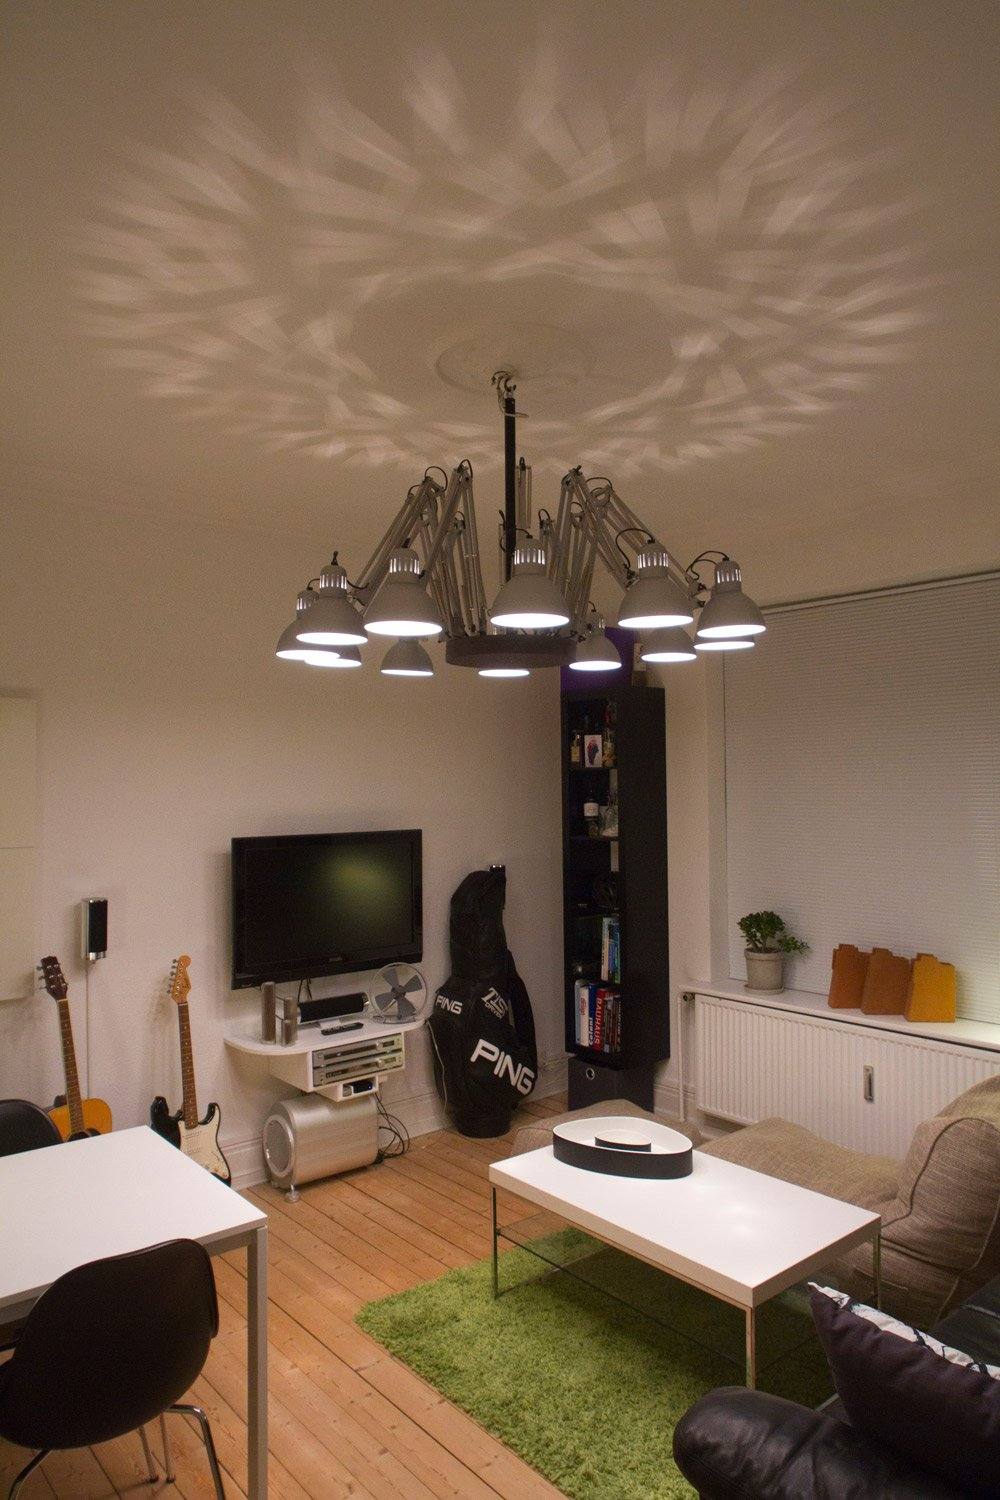 IKEA TERTIAL Ceiling Lights